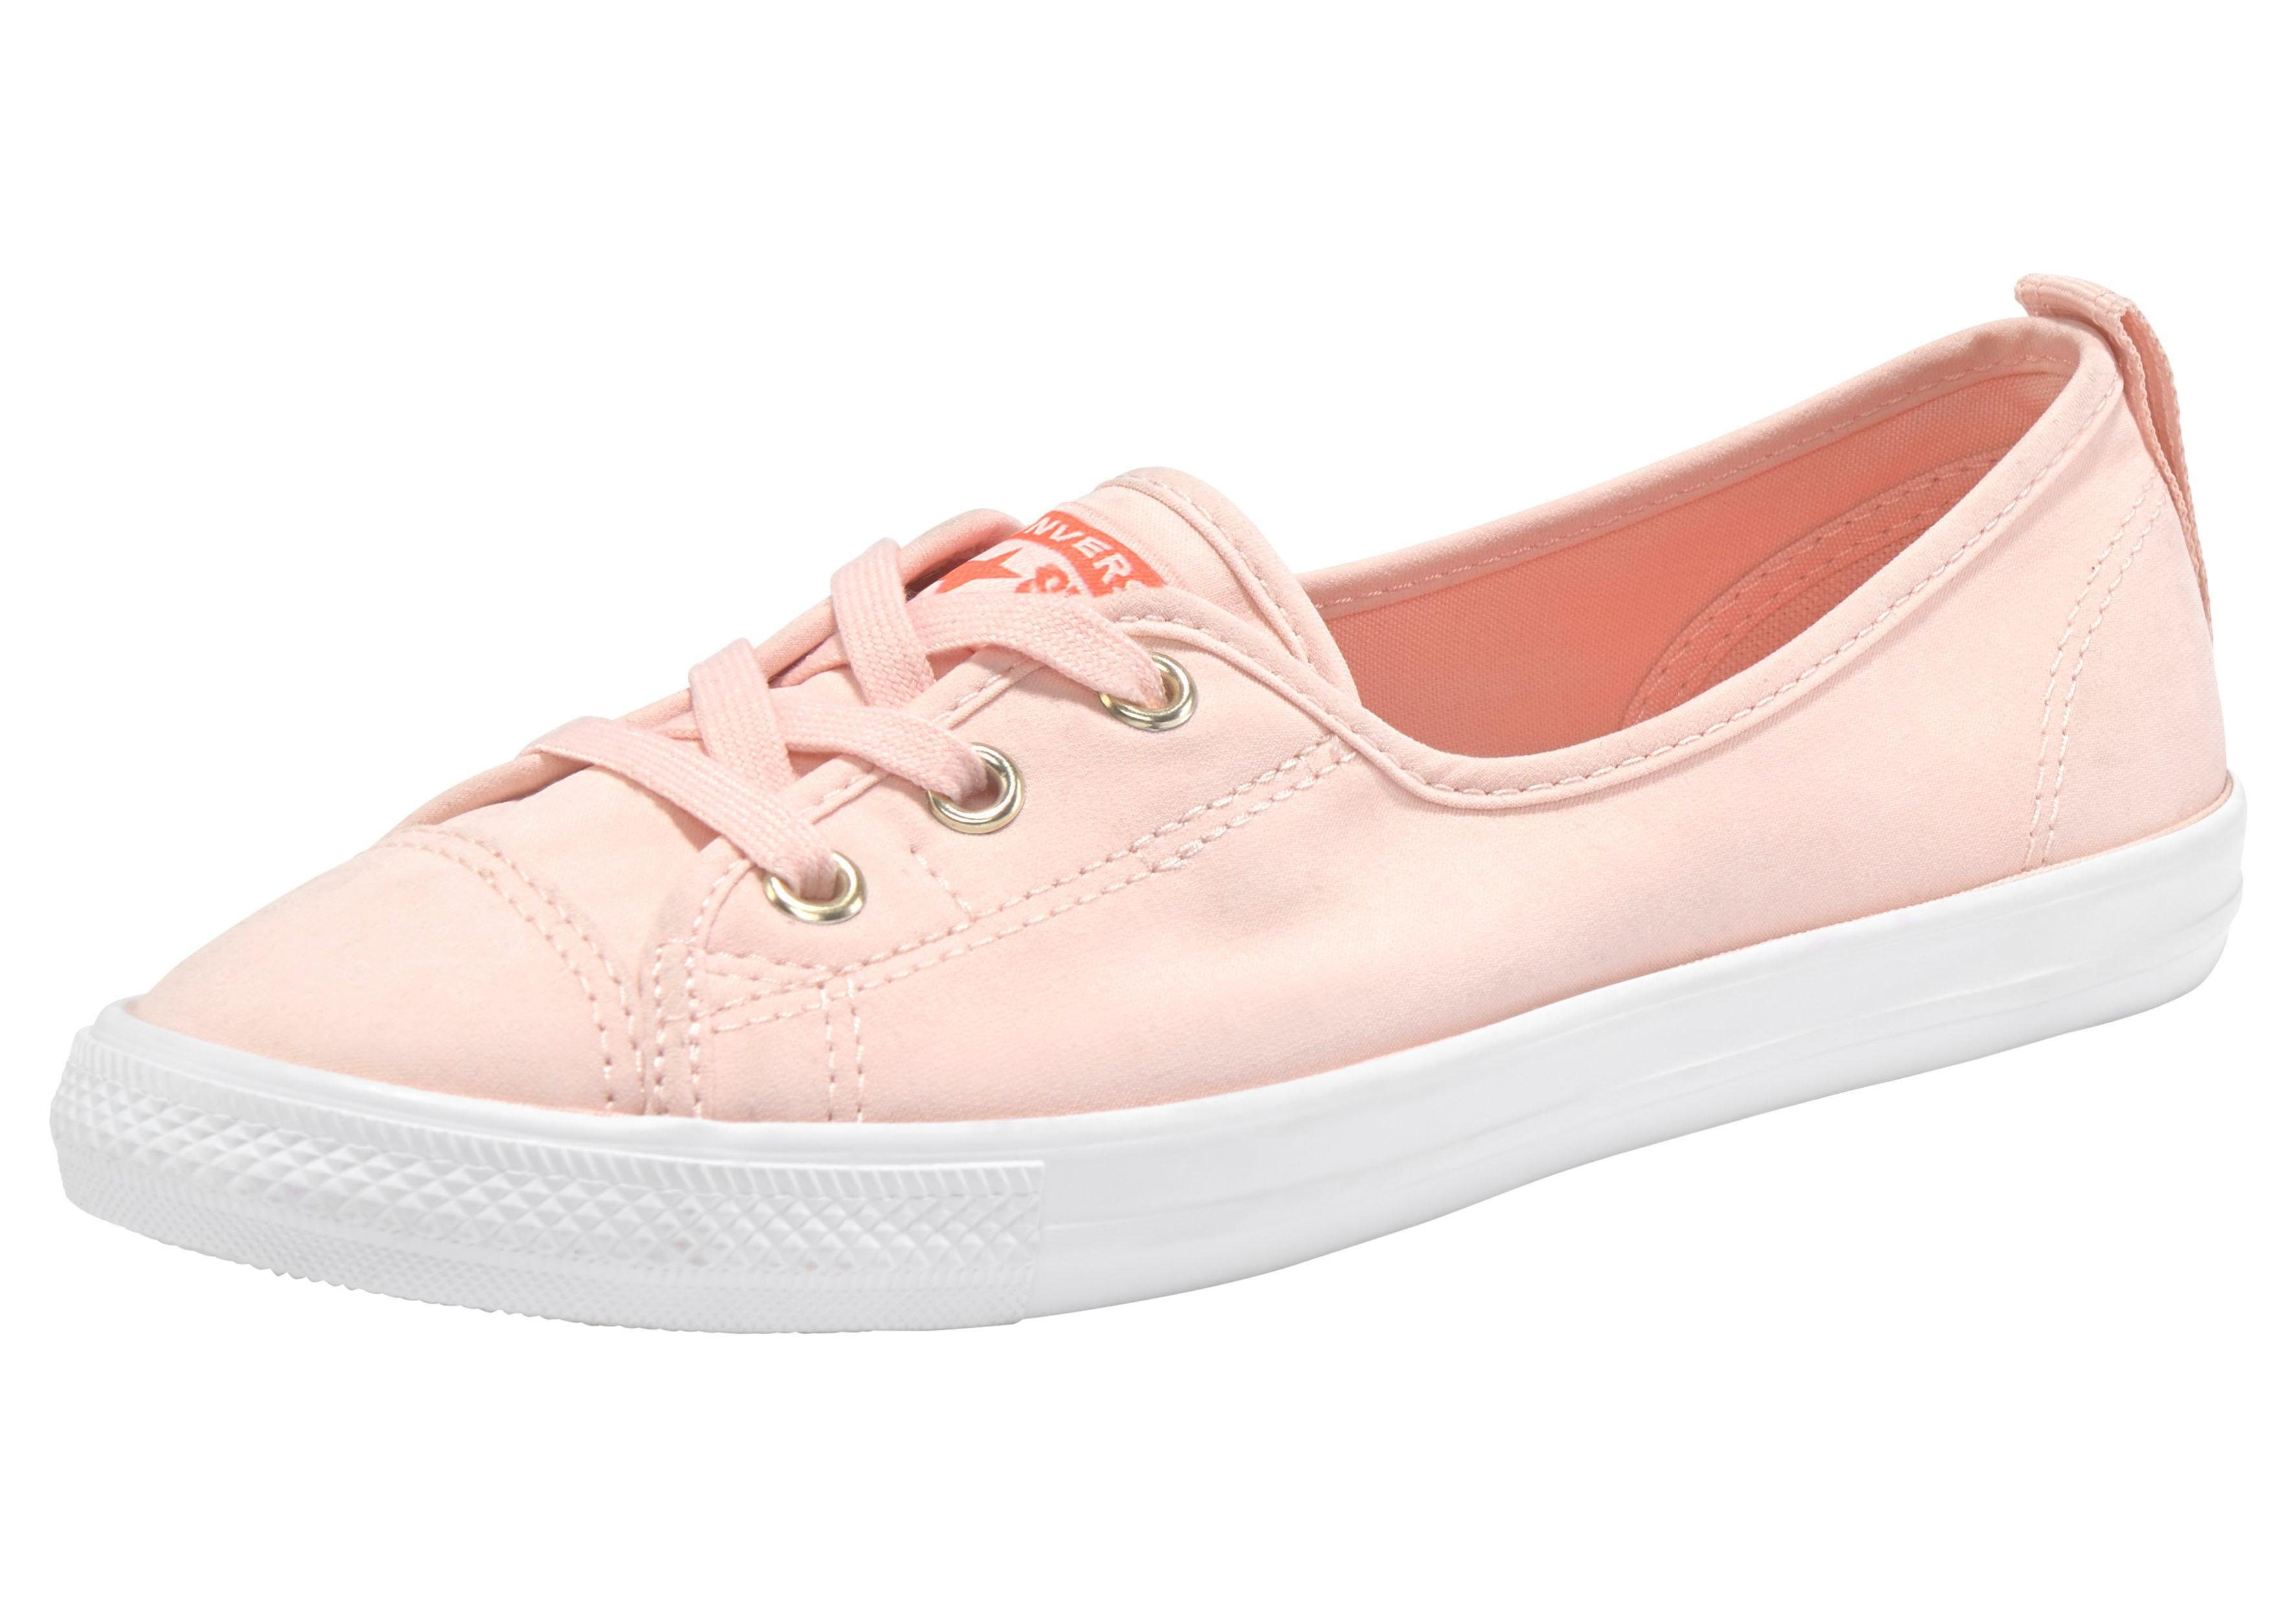 Converse »Chuck Taylor All Star Ballet Lace Slip« Sneaker online kaufen | OTTO